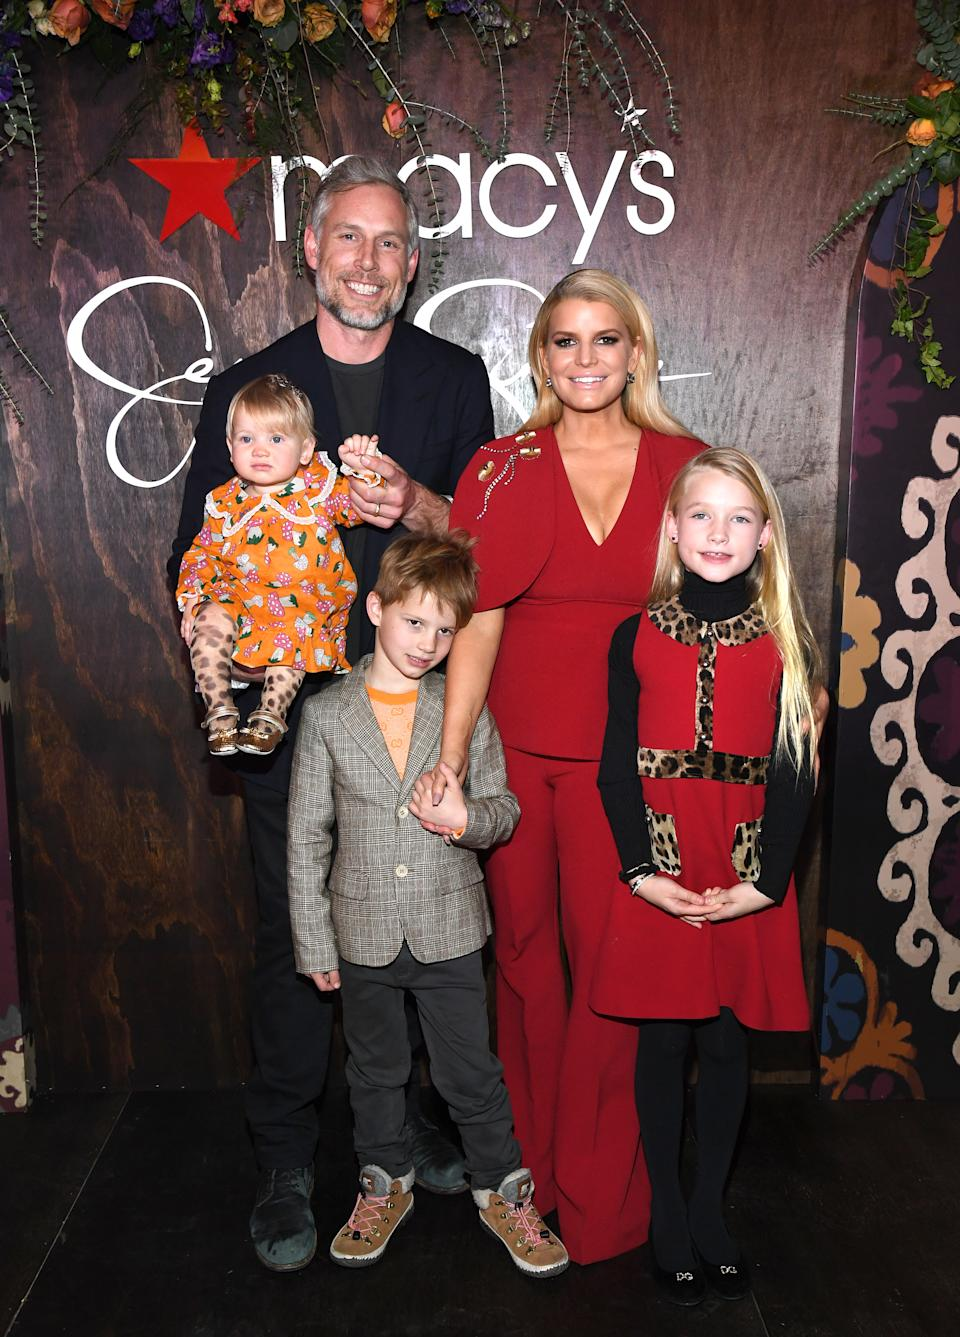 NEW YORK, NEW YORK - FEBRUARY 05: Jessica Simpson poses with Eric Johnson, Birdie Mae Johnson, Ace Knute Johnson and Maxwell Drew Johnson during a celebration of her memoir